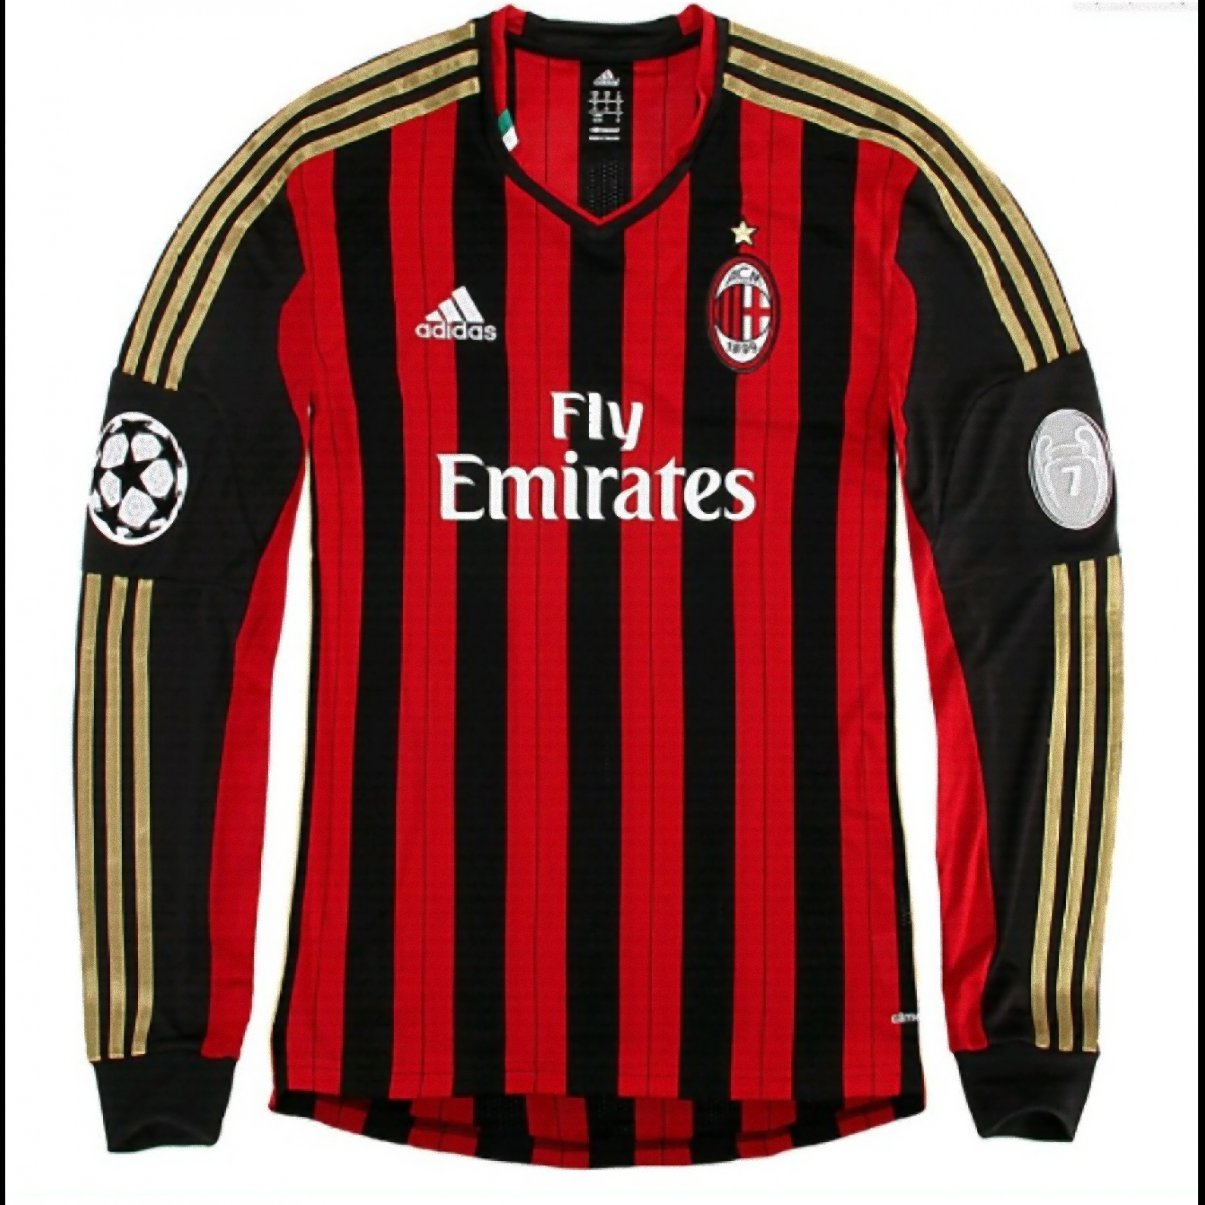 AC Milan Adidas Home 2014/2015 Soccer Long Sleeve Jersey (S)